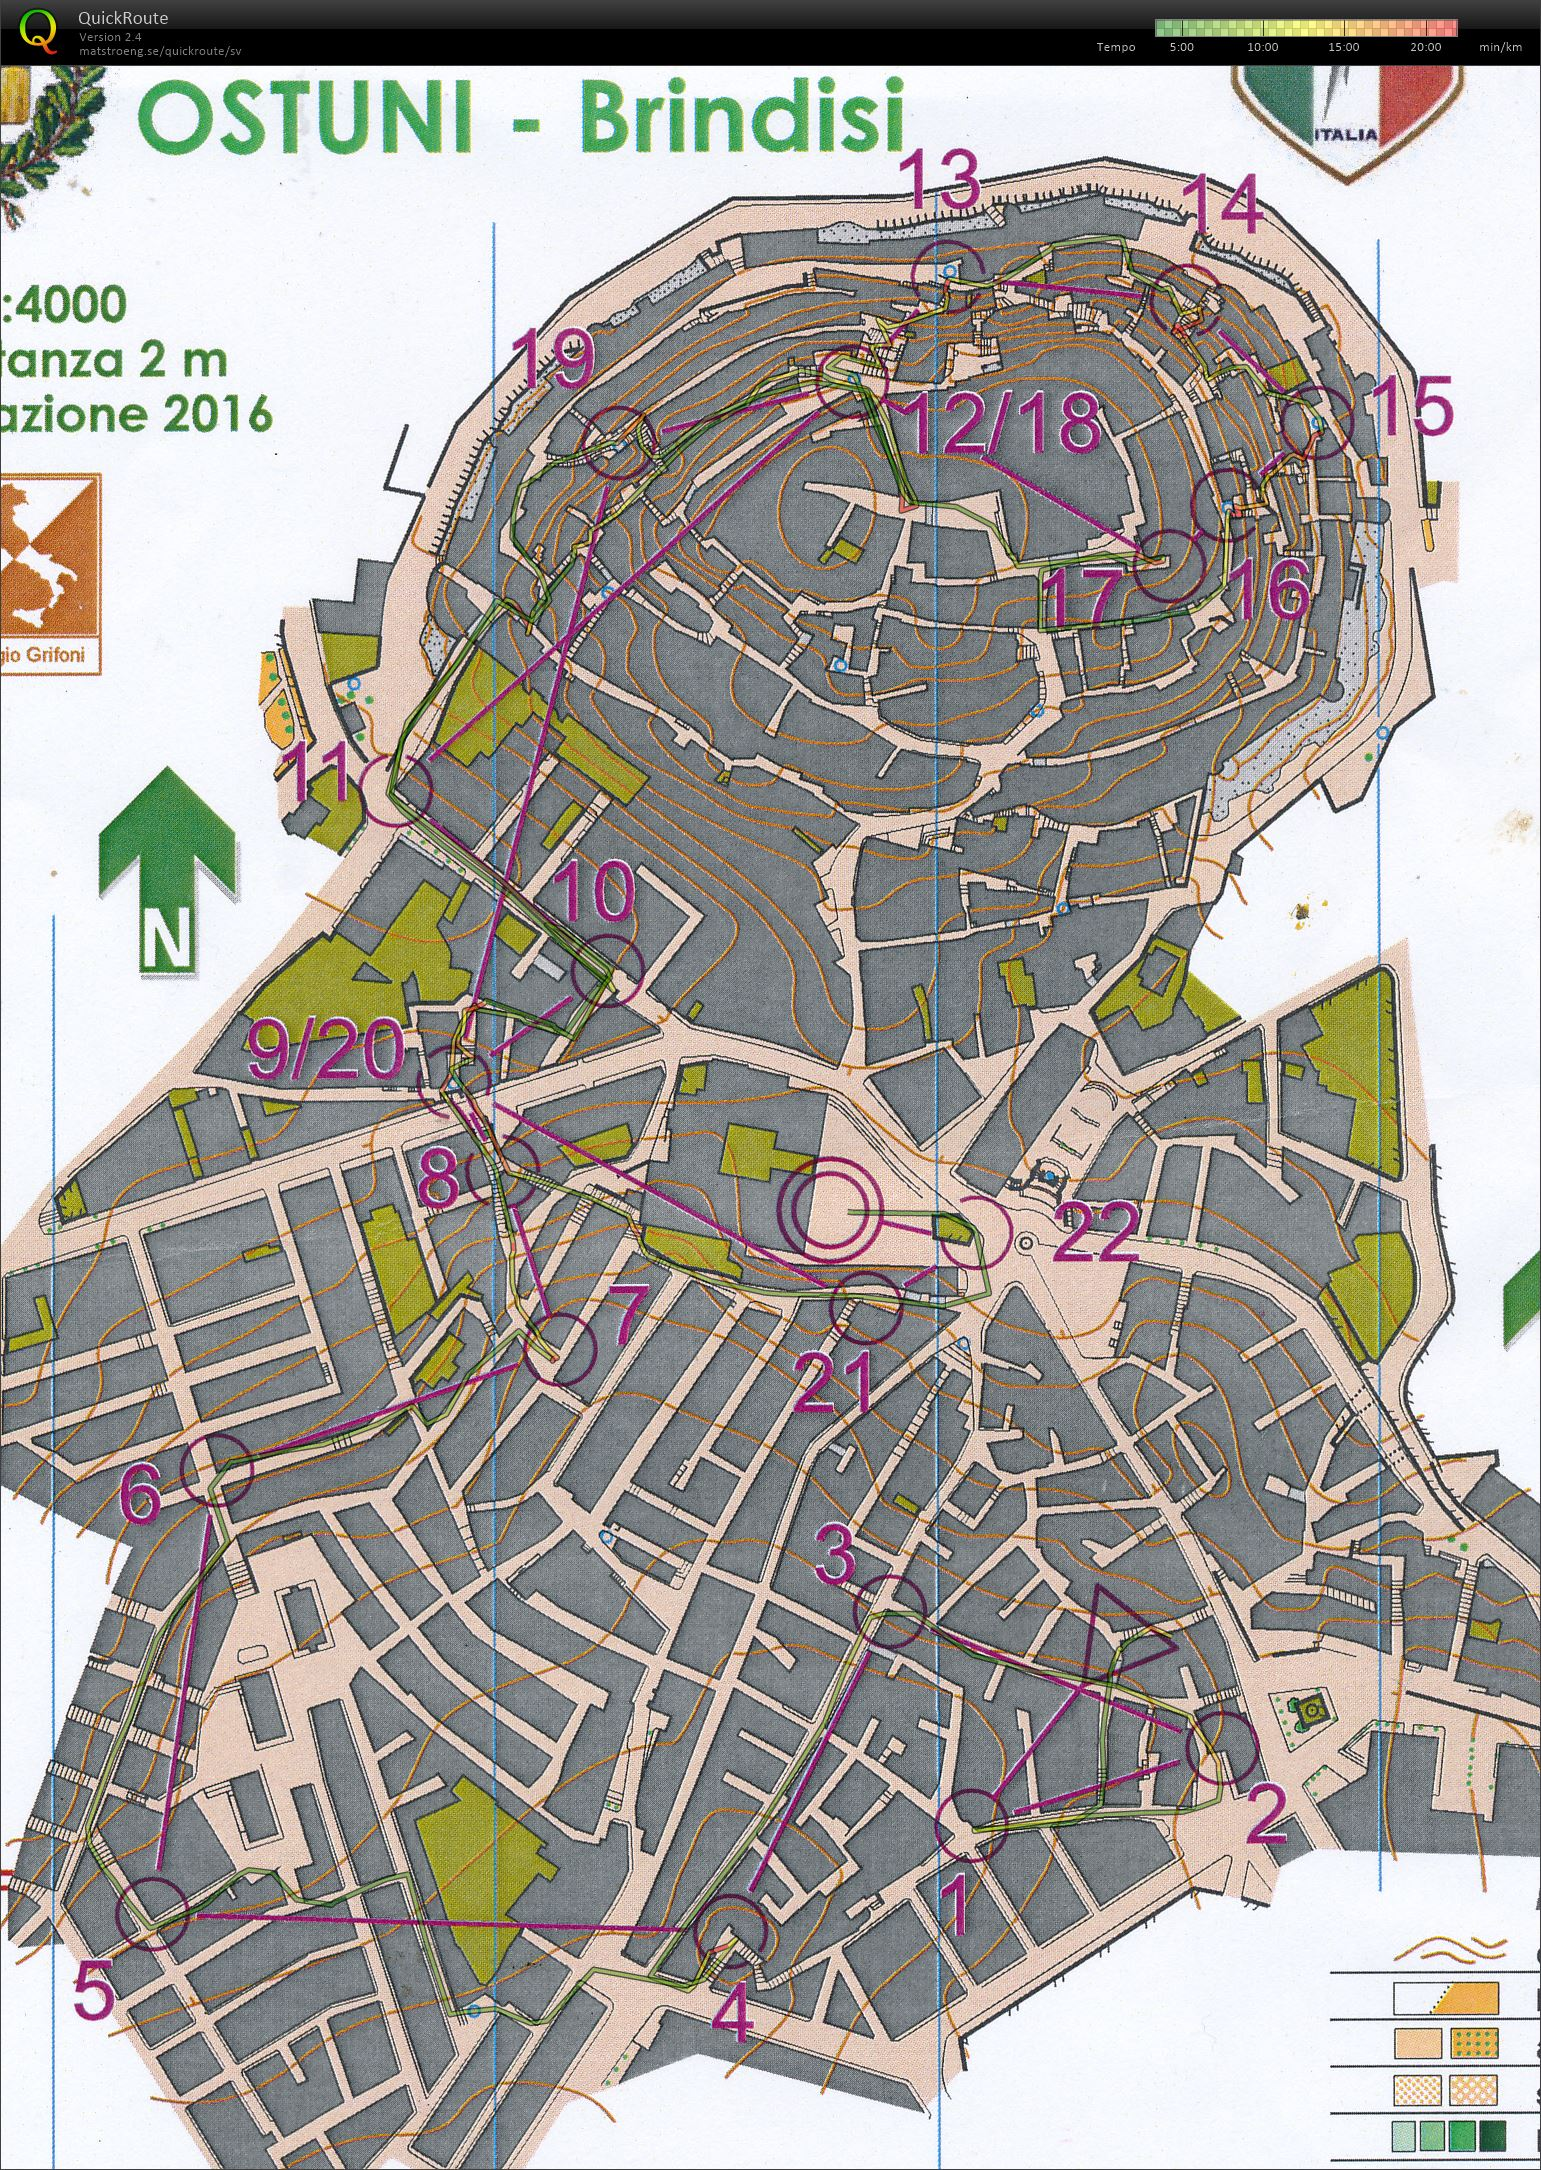 Southern Italy orienteering festival dag 5 (03/06/2017)